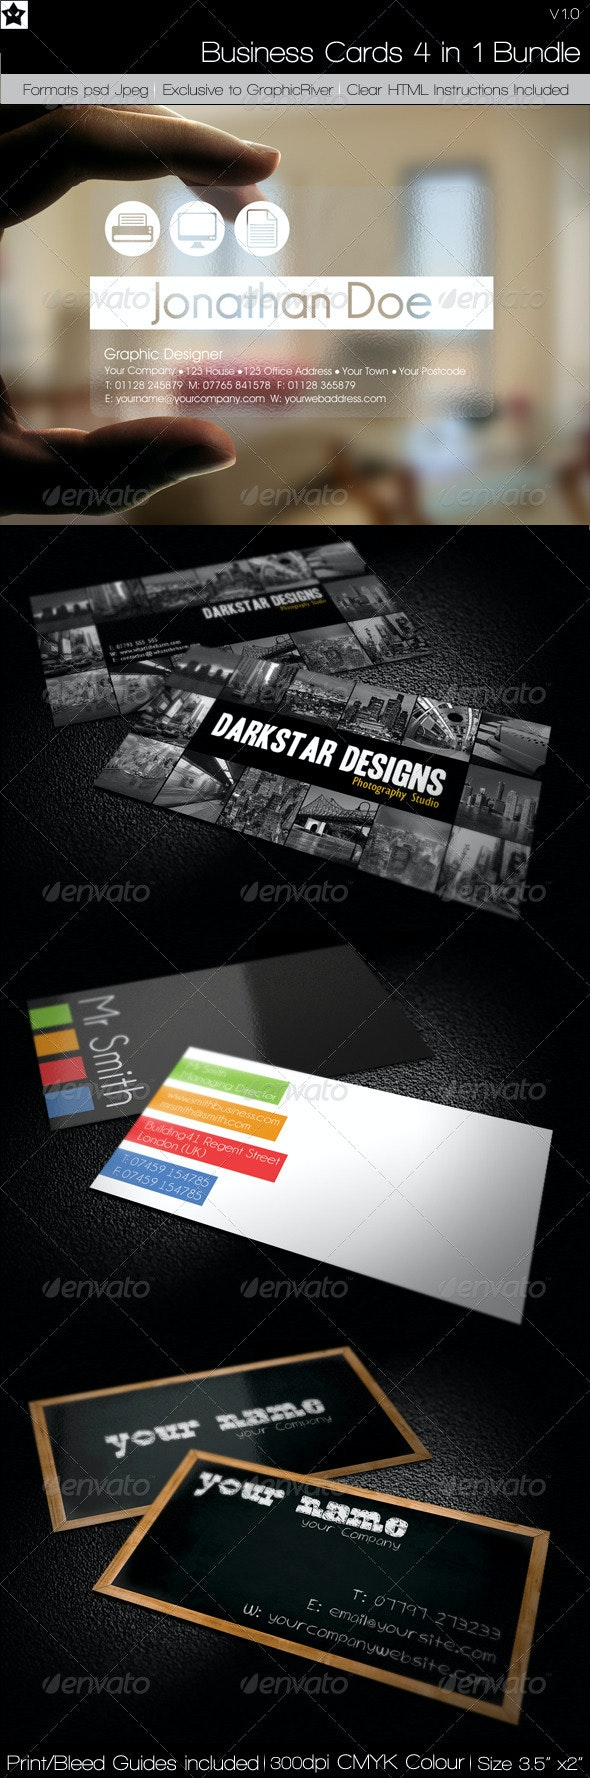 Business cards 4 in 1 Bundle 2 - Corporate Business Cards